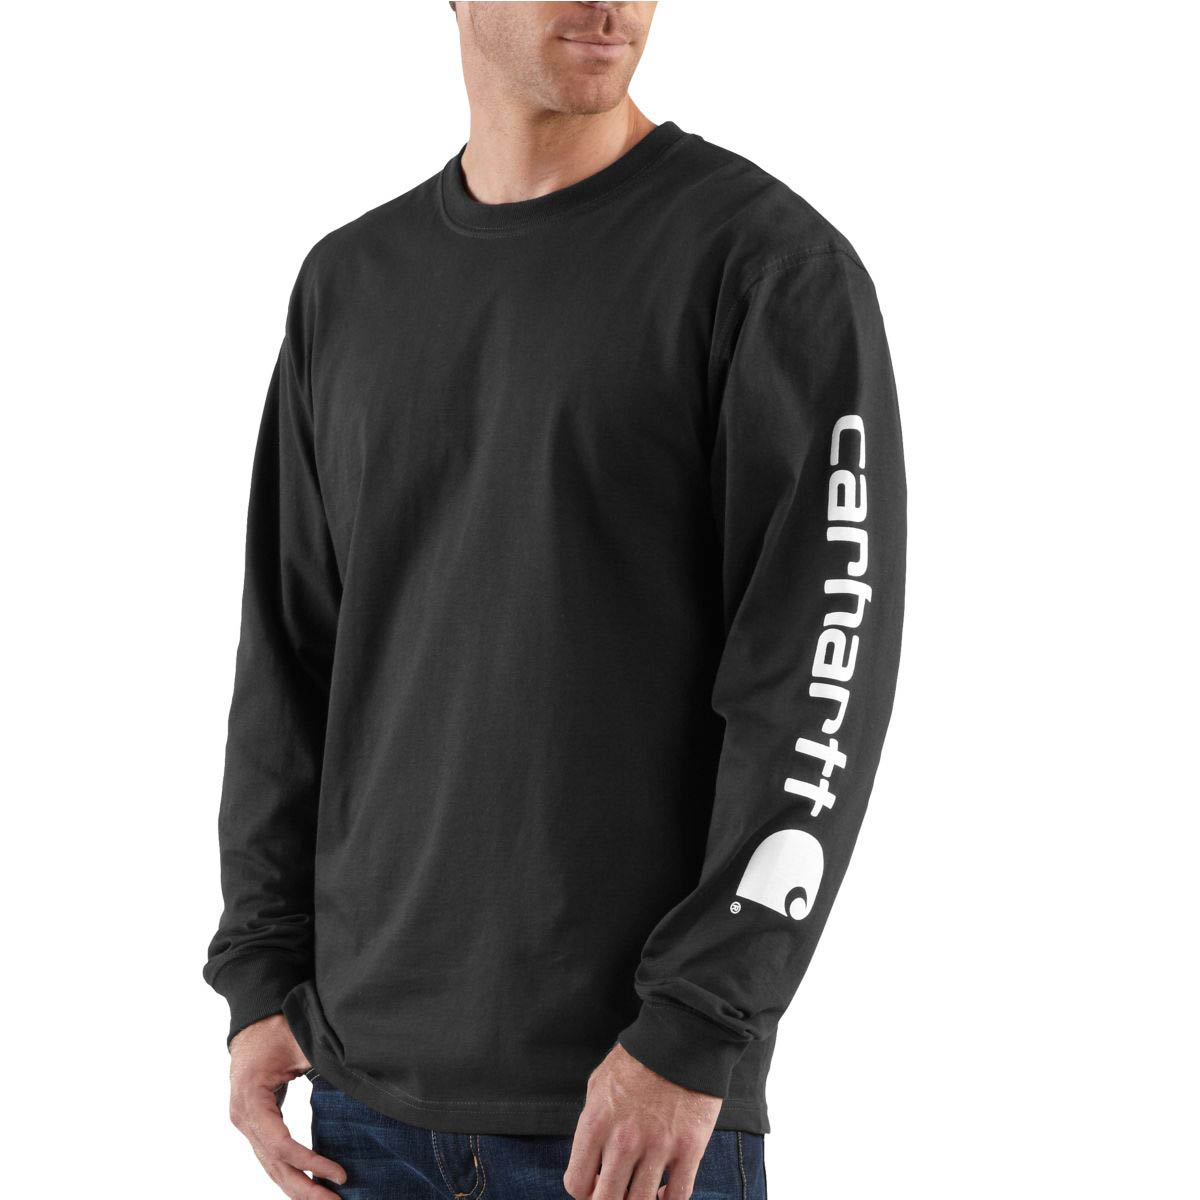 Carhartt Men's Signature Sleeve Graphic Long Sleeve T Shirt